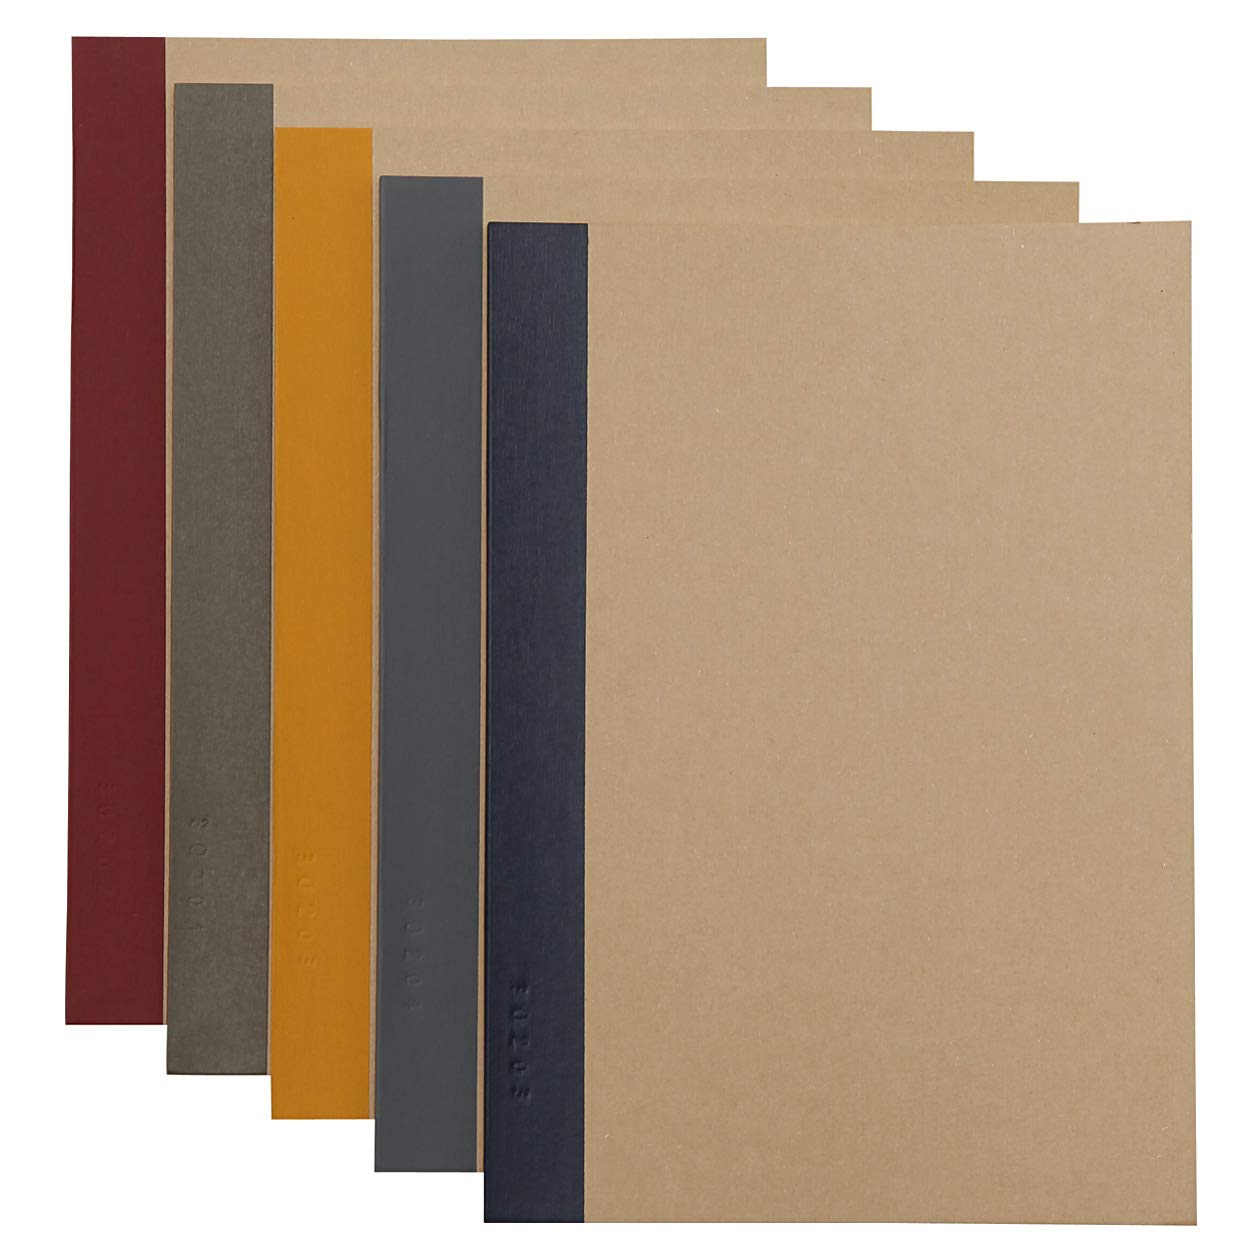 Muji Notebook A5 6Mm Rule 30Sheets Pack Of 5Books